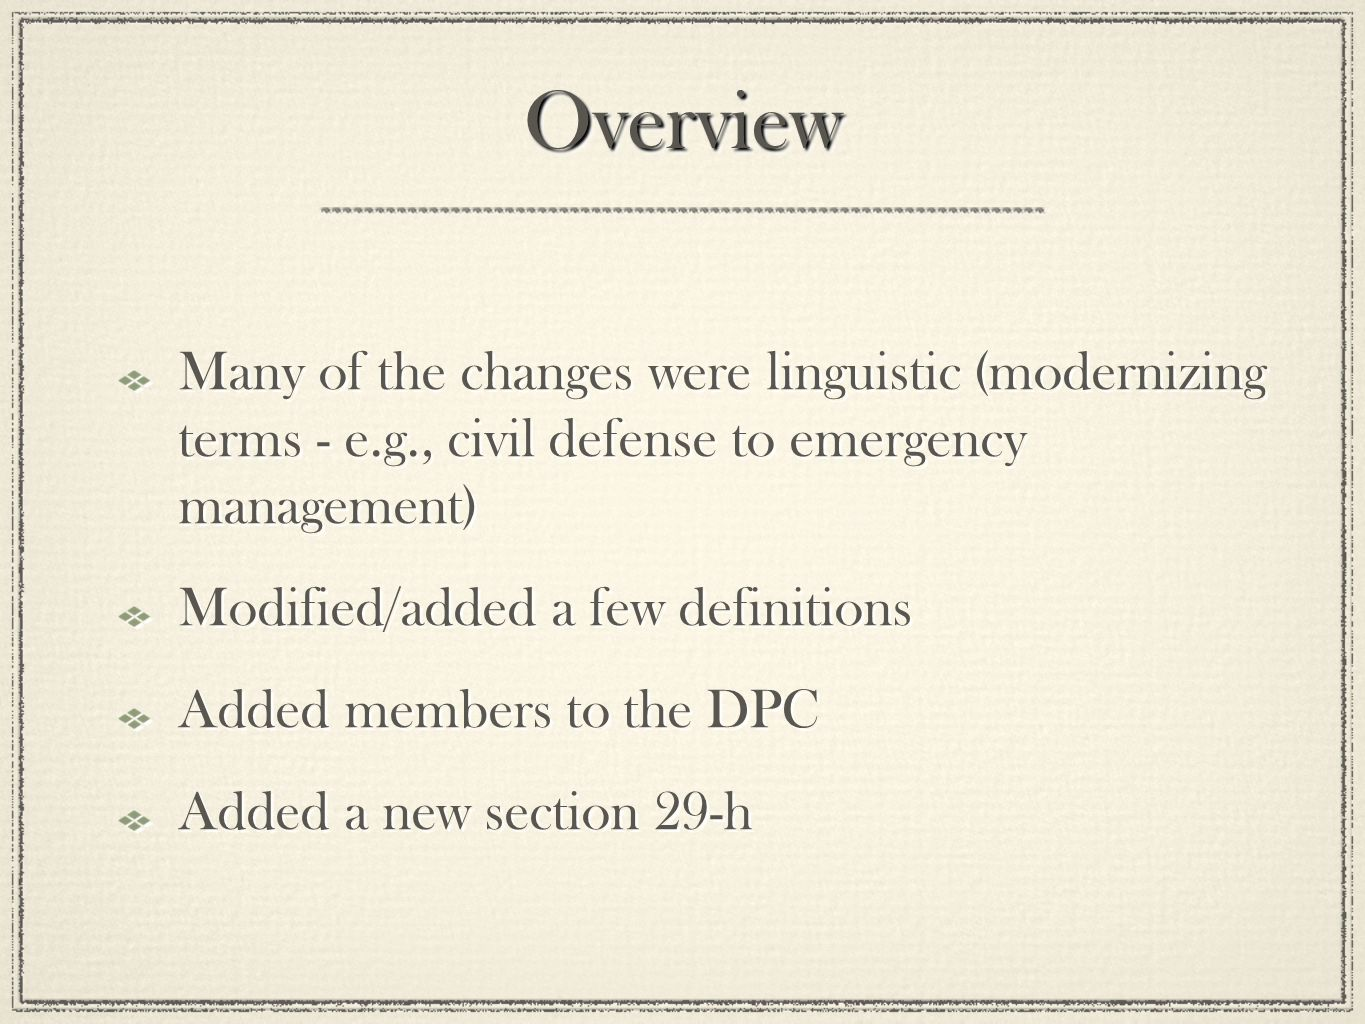 OverviewOverview Many of the changes were linguistic (modernizing terms - e.g., civil defense to emergency management) Modified/added a few definitions Added members to the DPC Added a new section 29-h Many of the changes were linguistic (modernizing terms - e.g., civil defense to emergency management) Modified/added a few definitions Added members to the DPC Added a new section 29-h